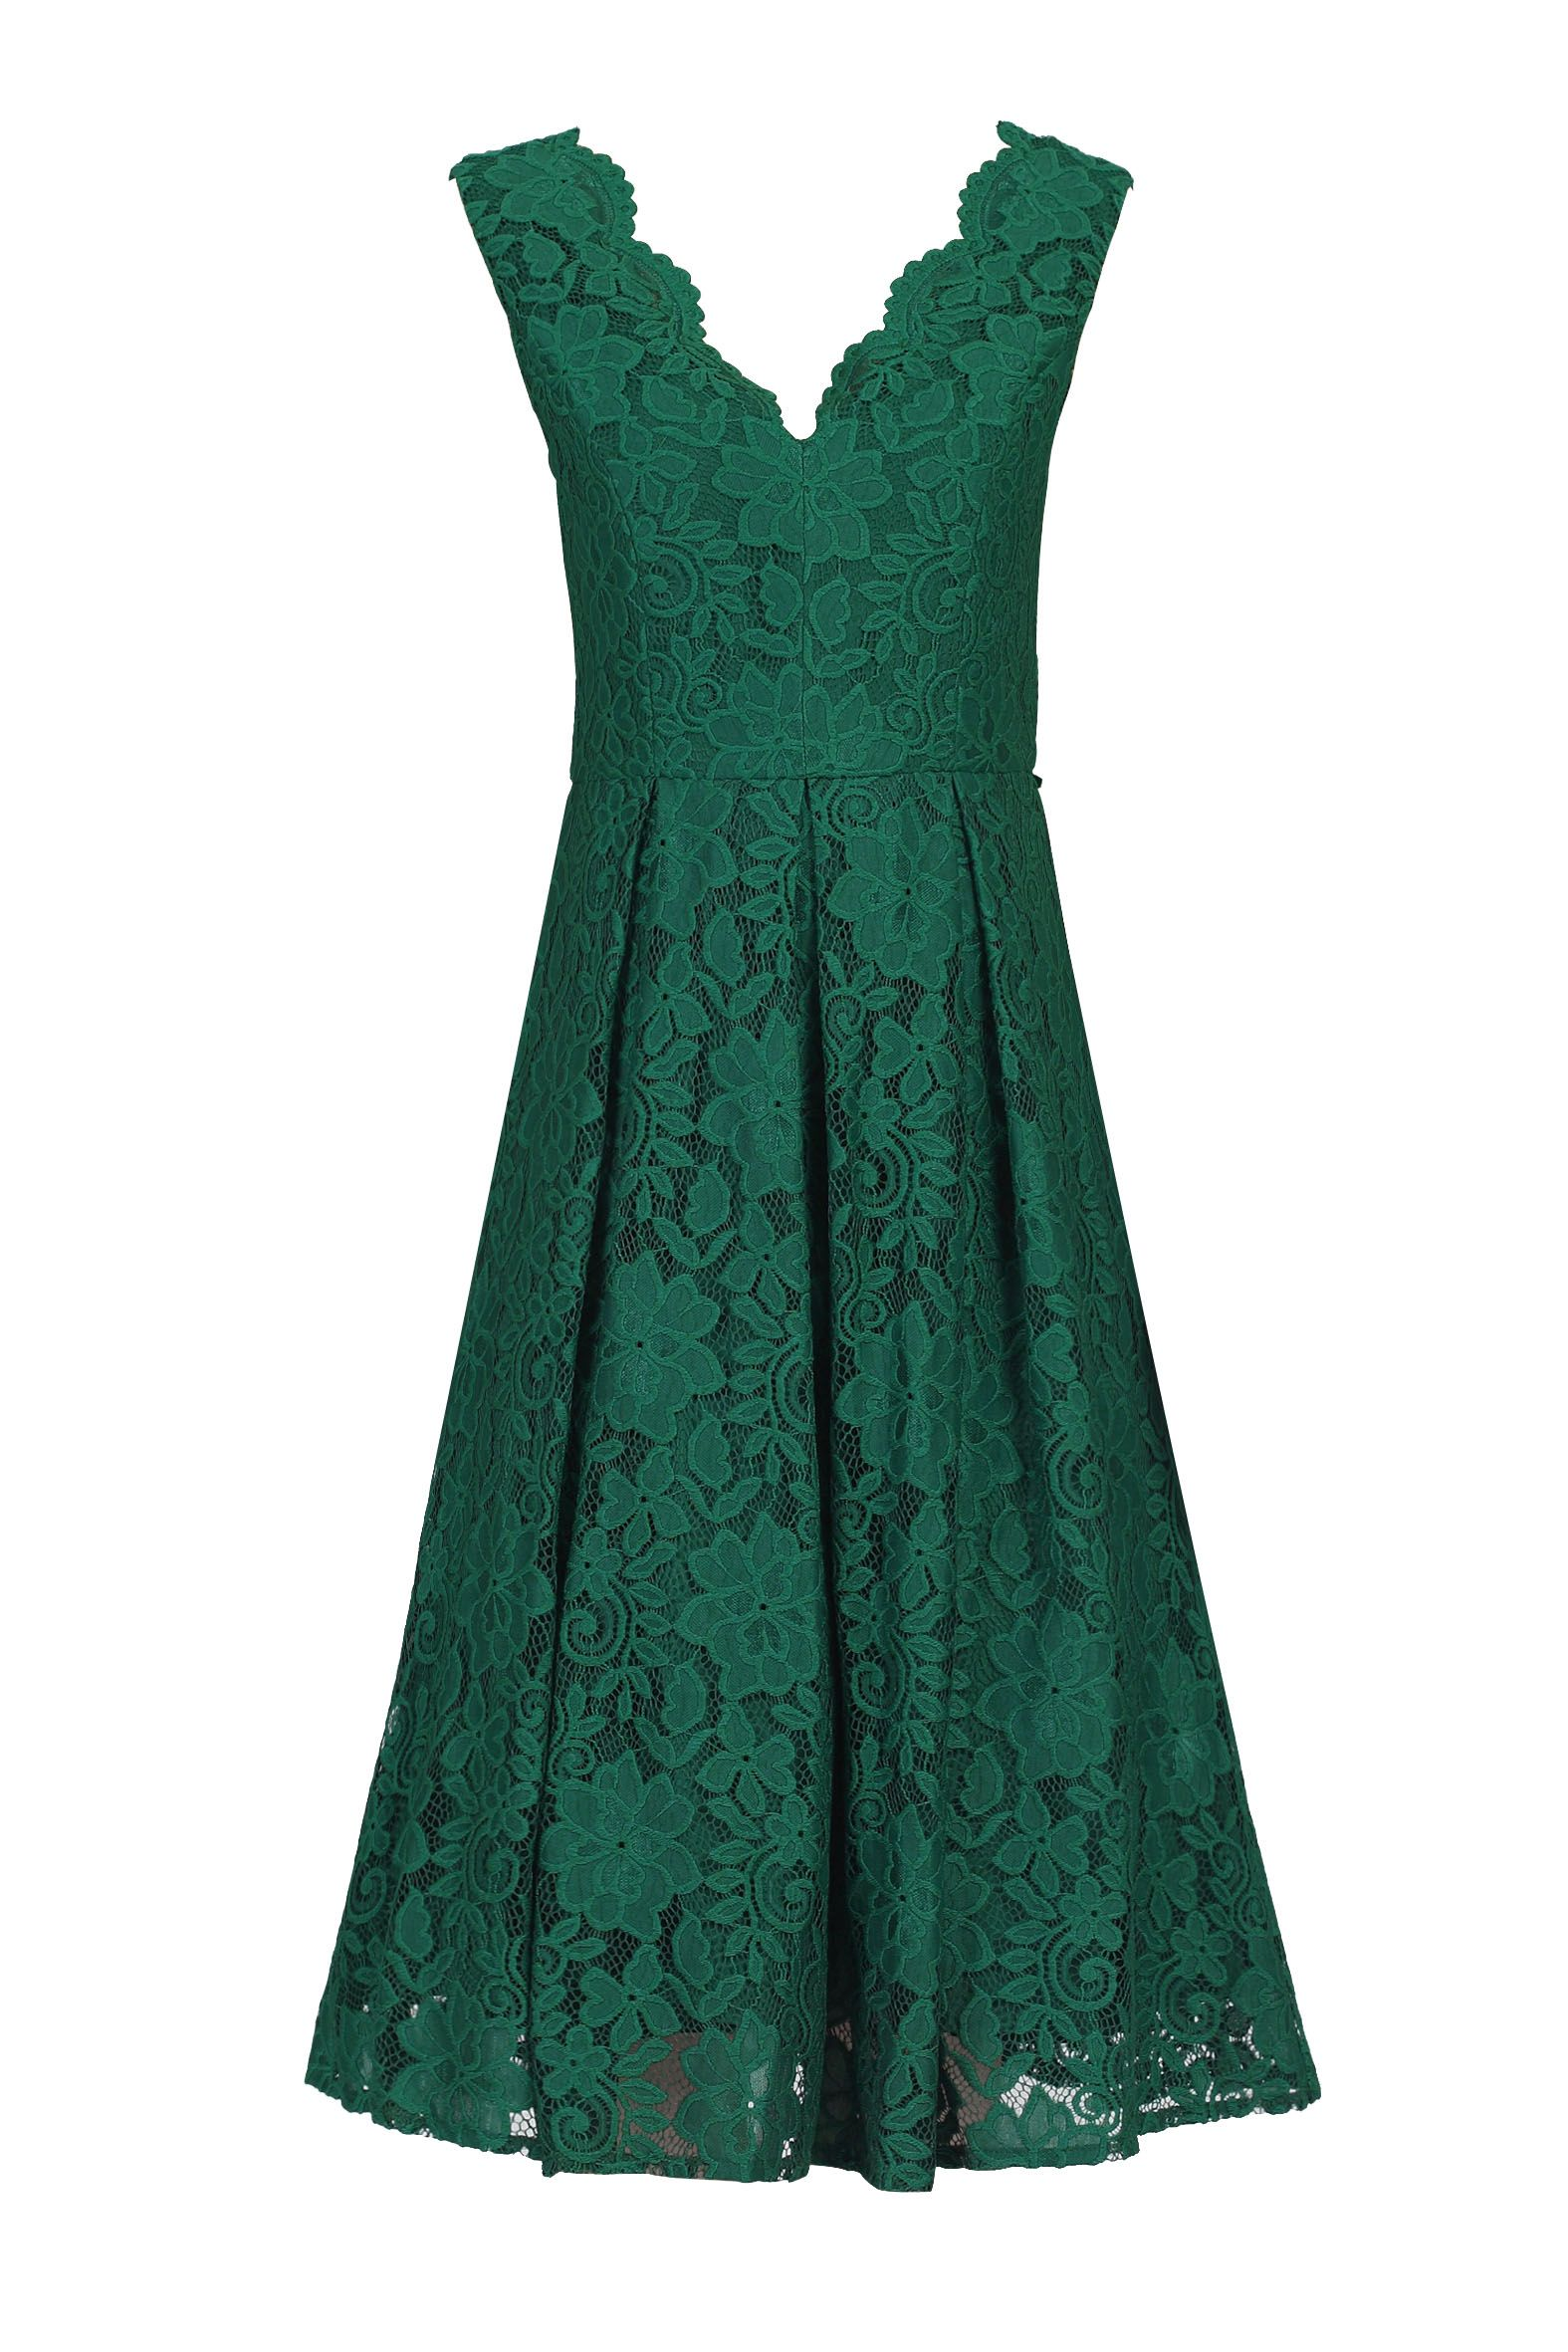 Jolie Moi V Neck Pleated Lace Dress, Dark Green